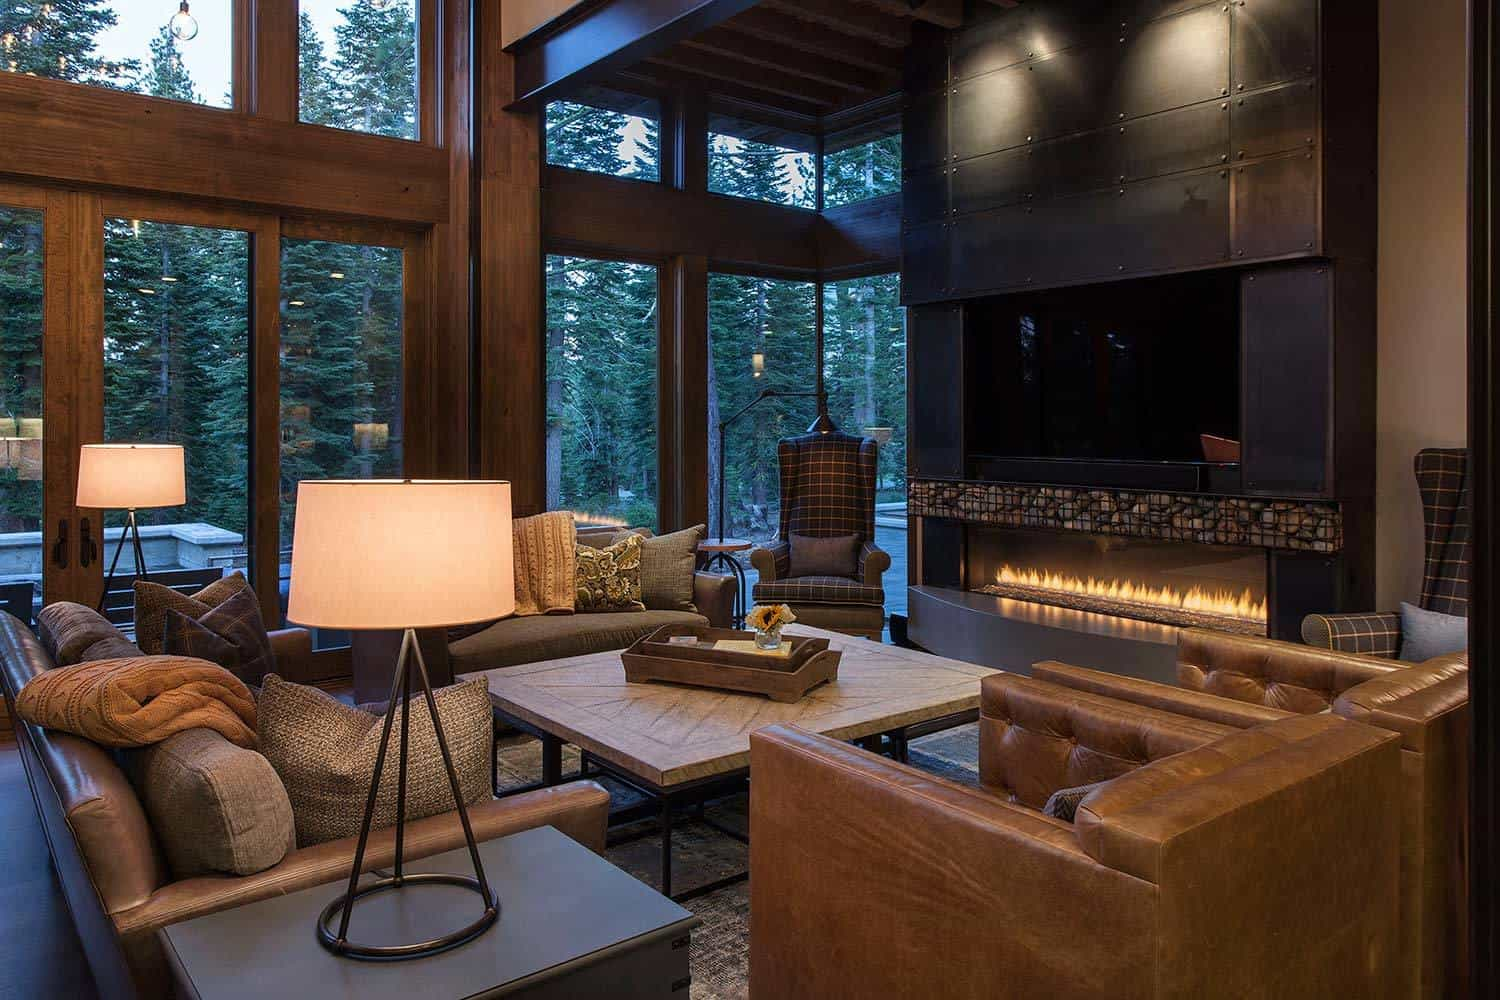 Lake tahoe getaway features contemporary barn aesthetic Interior design ideas for the home